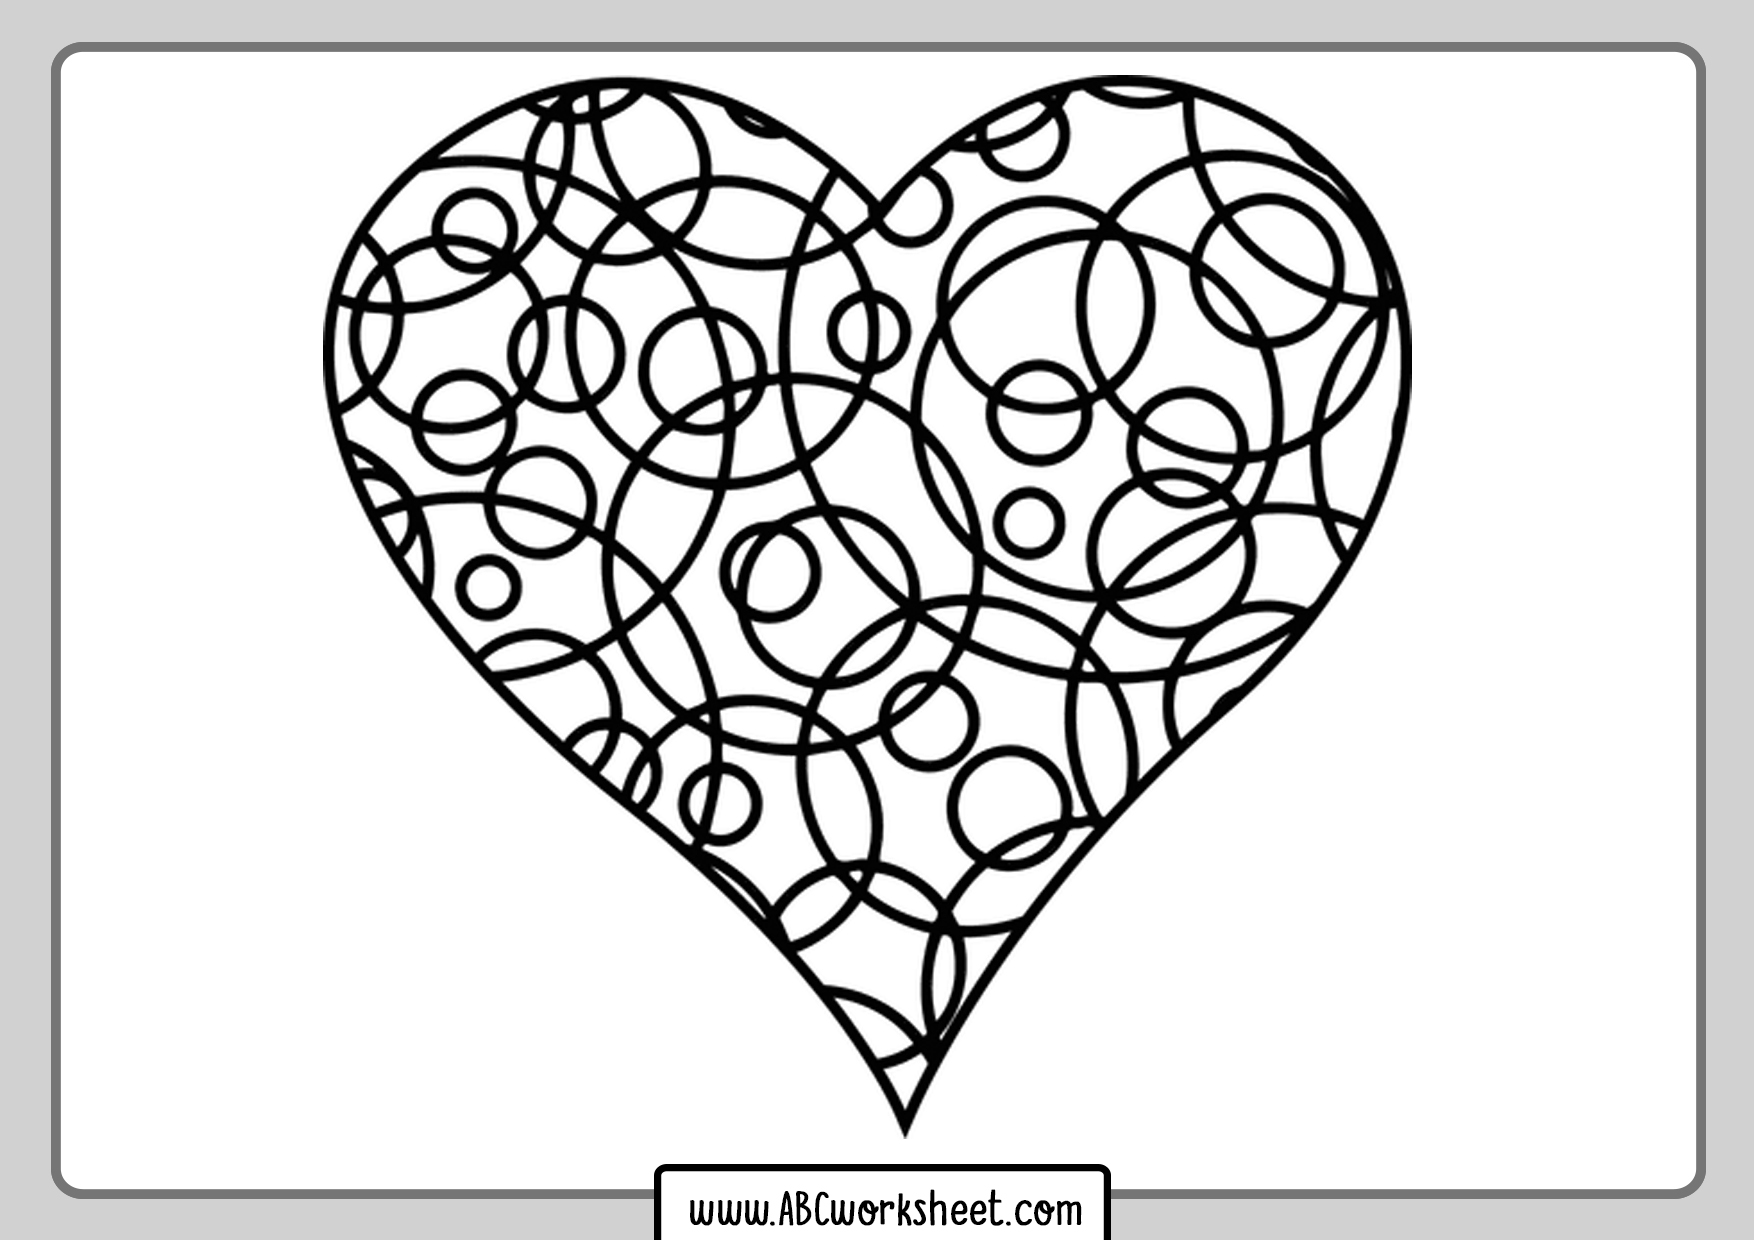 heart coloring worksheet free coloring page heart printable for kids free heart worksheet coloring